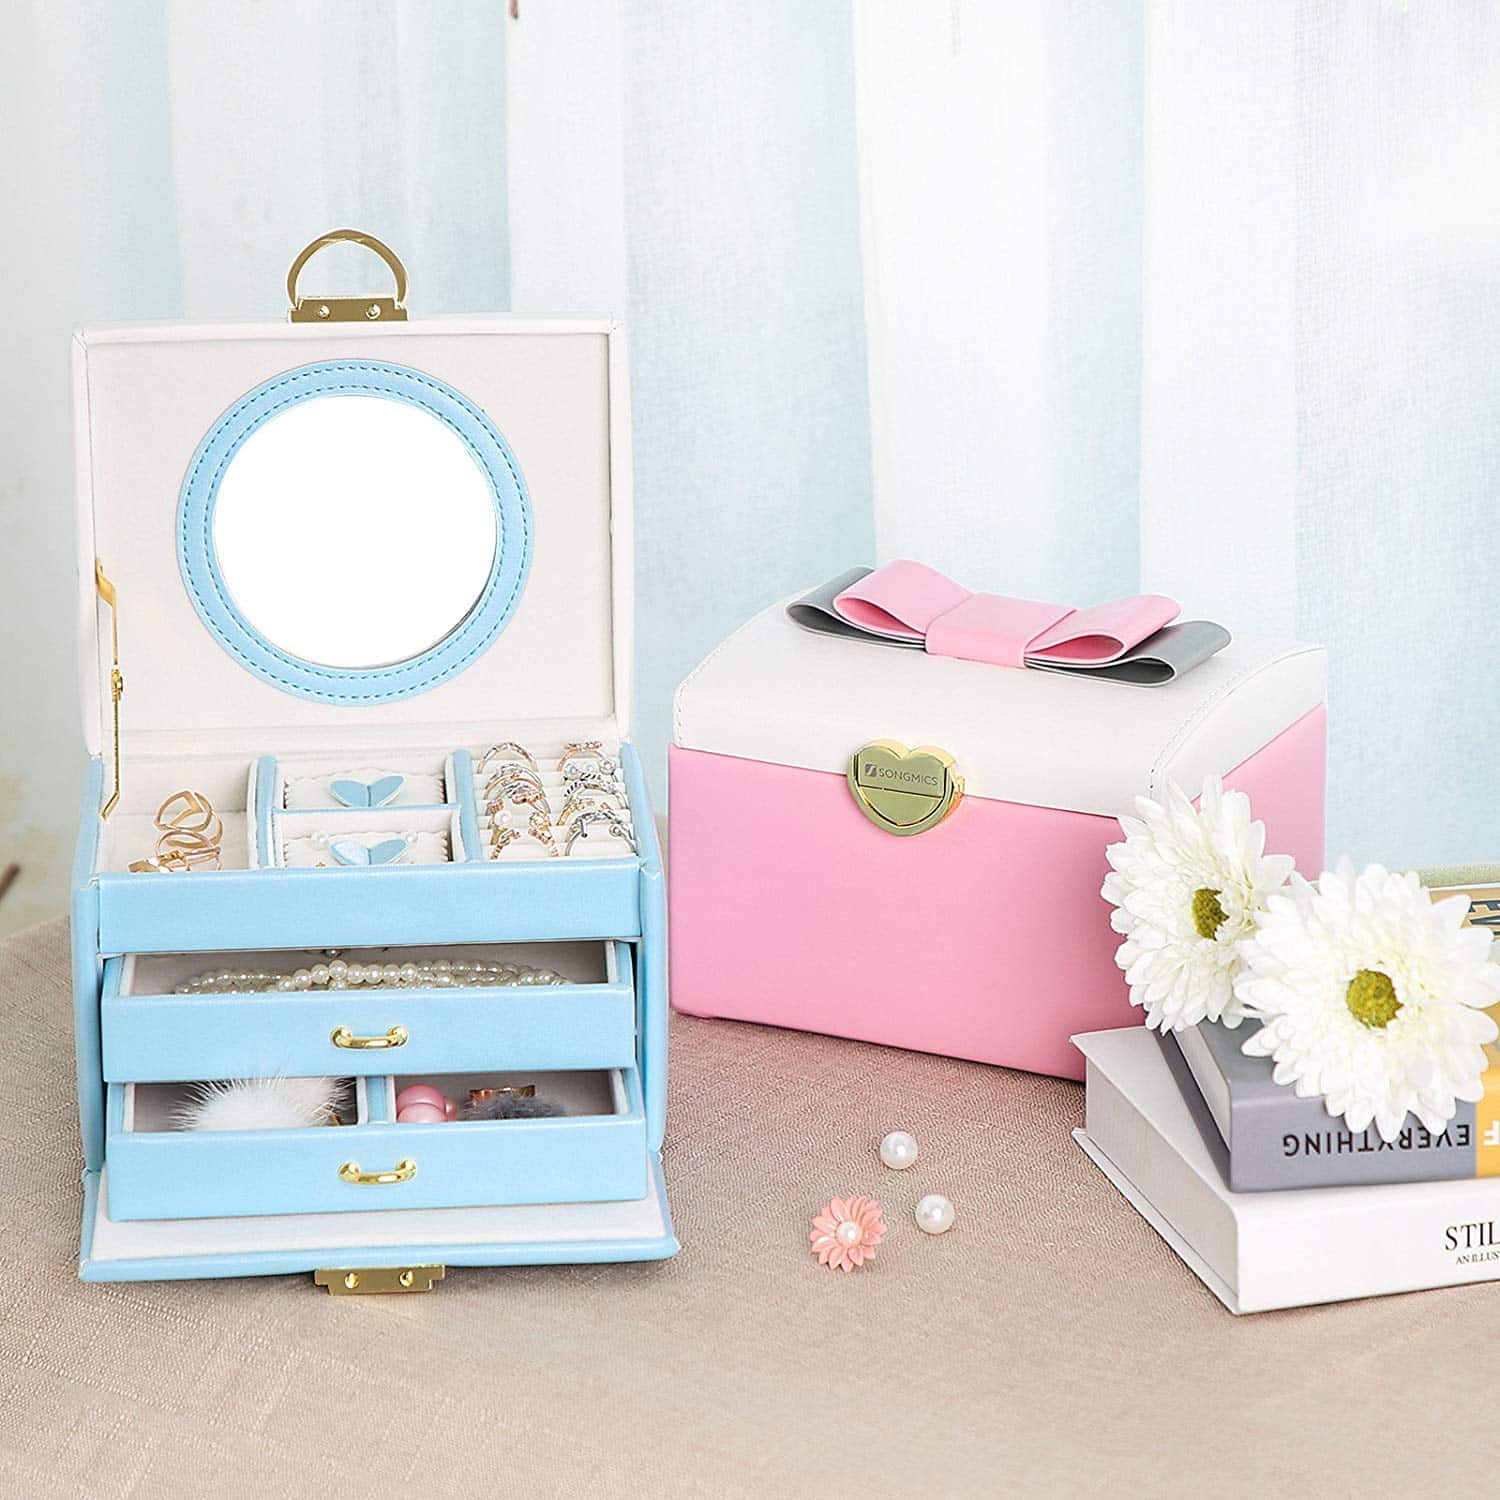 0963f546093b SONGMICS Jewelry Box with Bowknot Mirrored Compact Travel Case Gift for  Kids Girls and Women Blue and White UJBC115Q